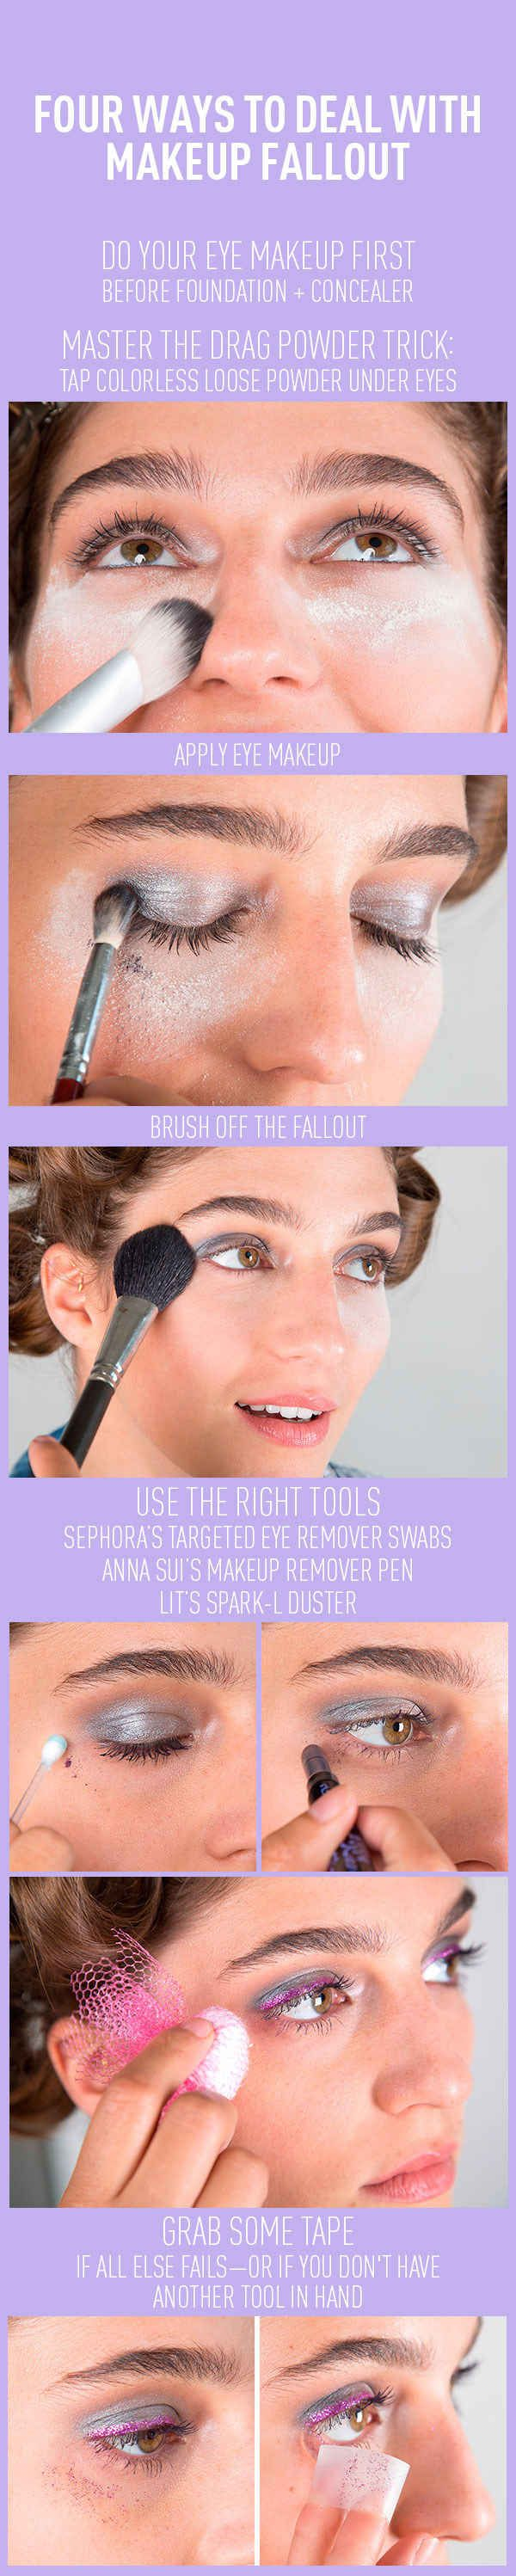 Great post for those struggling with eye shadow!!! Details and really helpful tips